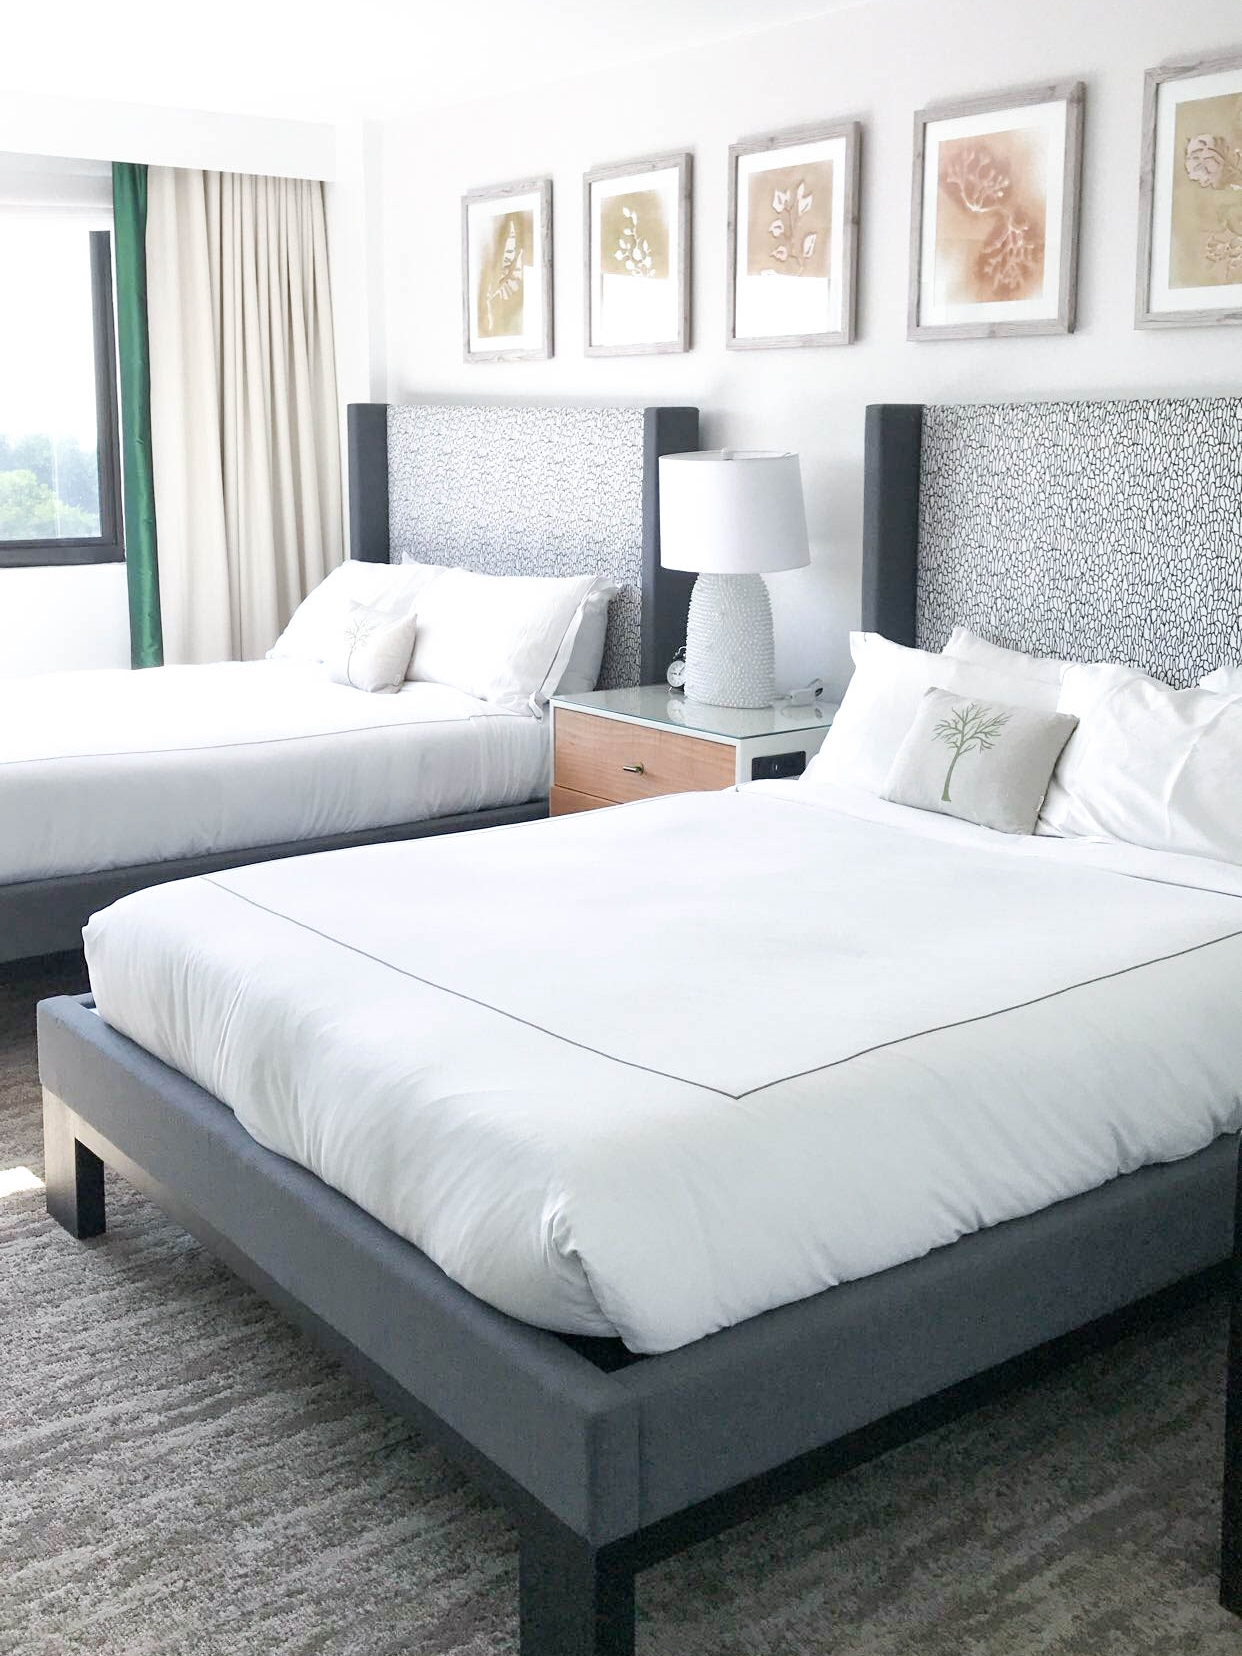 Our beautiful and incredibly comfortable beds at Kimpton Glover Park